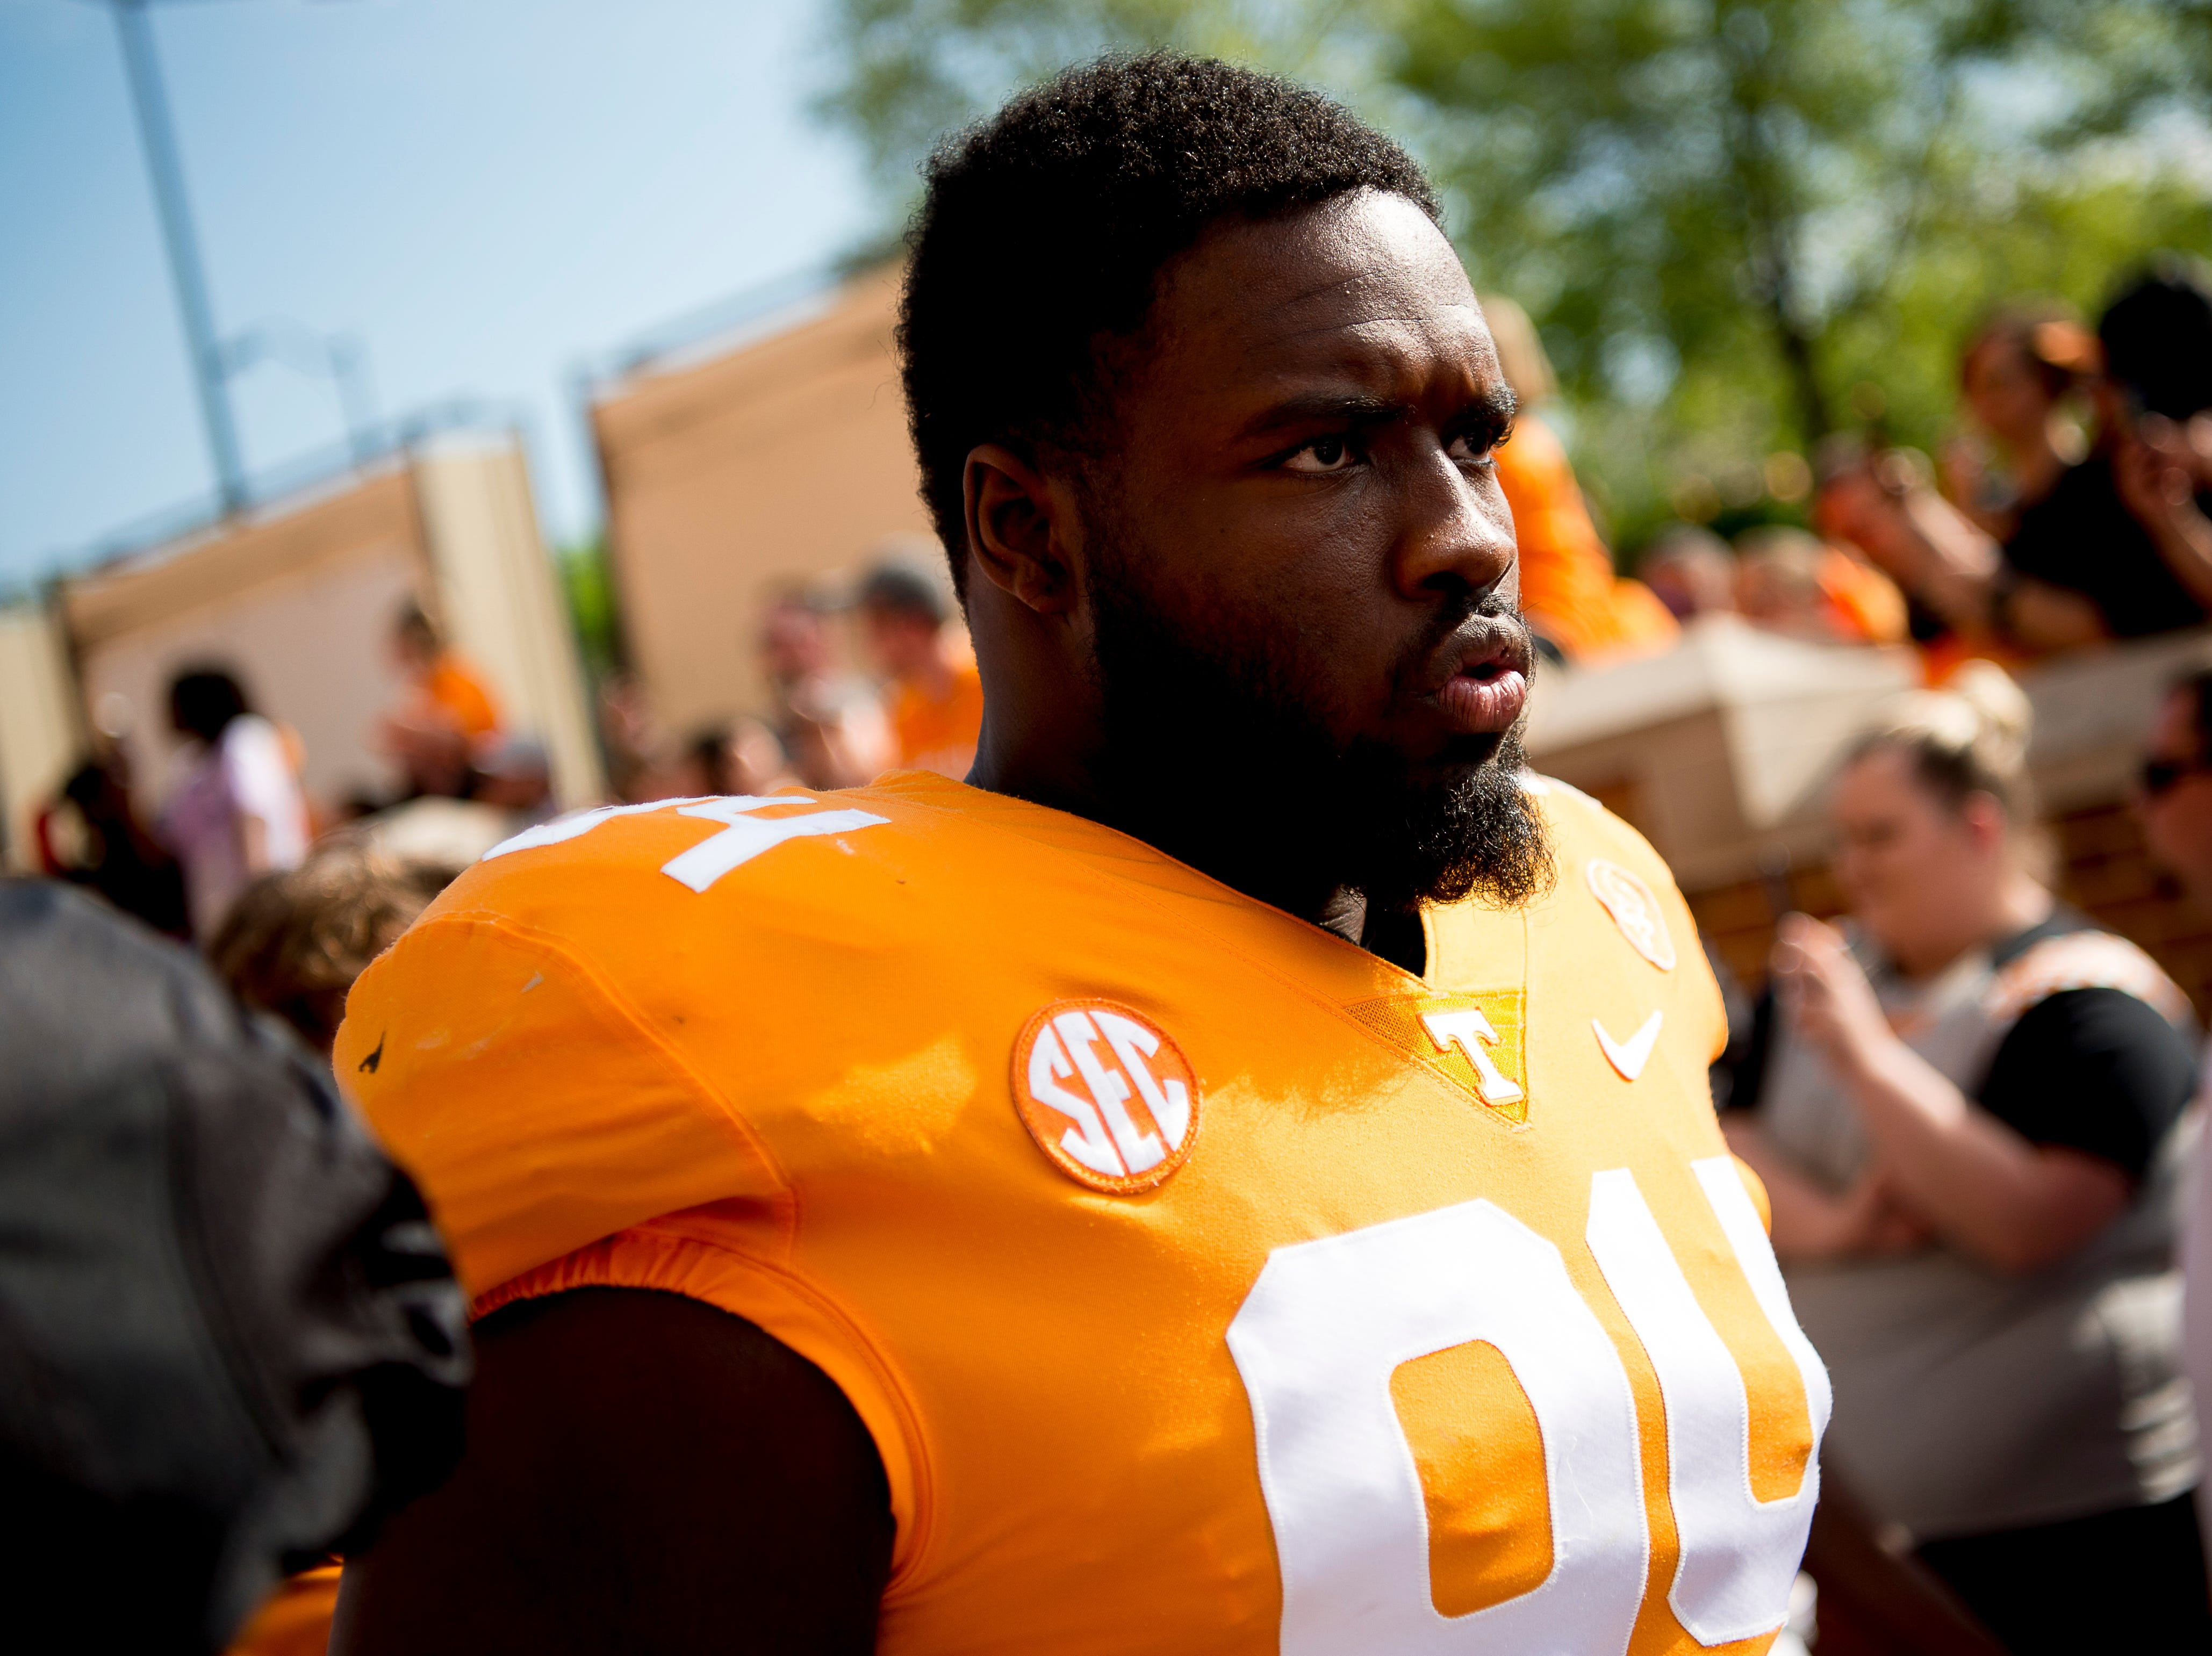 Tennessee defensive lineman Matthew Butler (94) during the Vol Walk at the Tennessee Spring Game at Neyland Stadium in Knoxville, Tennessee on Saturday, April 13, 2019.